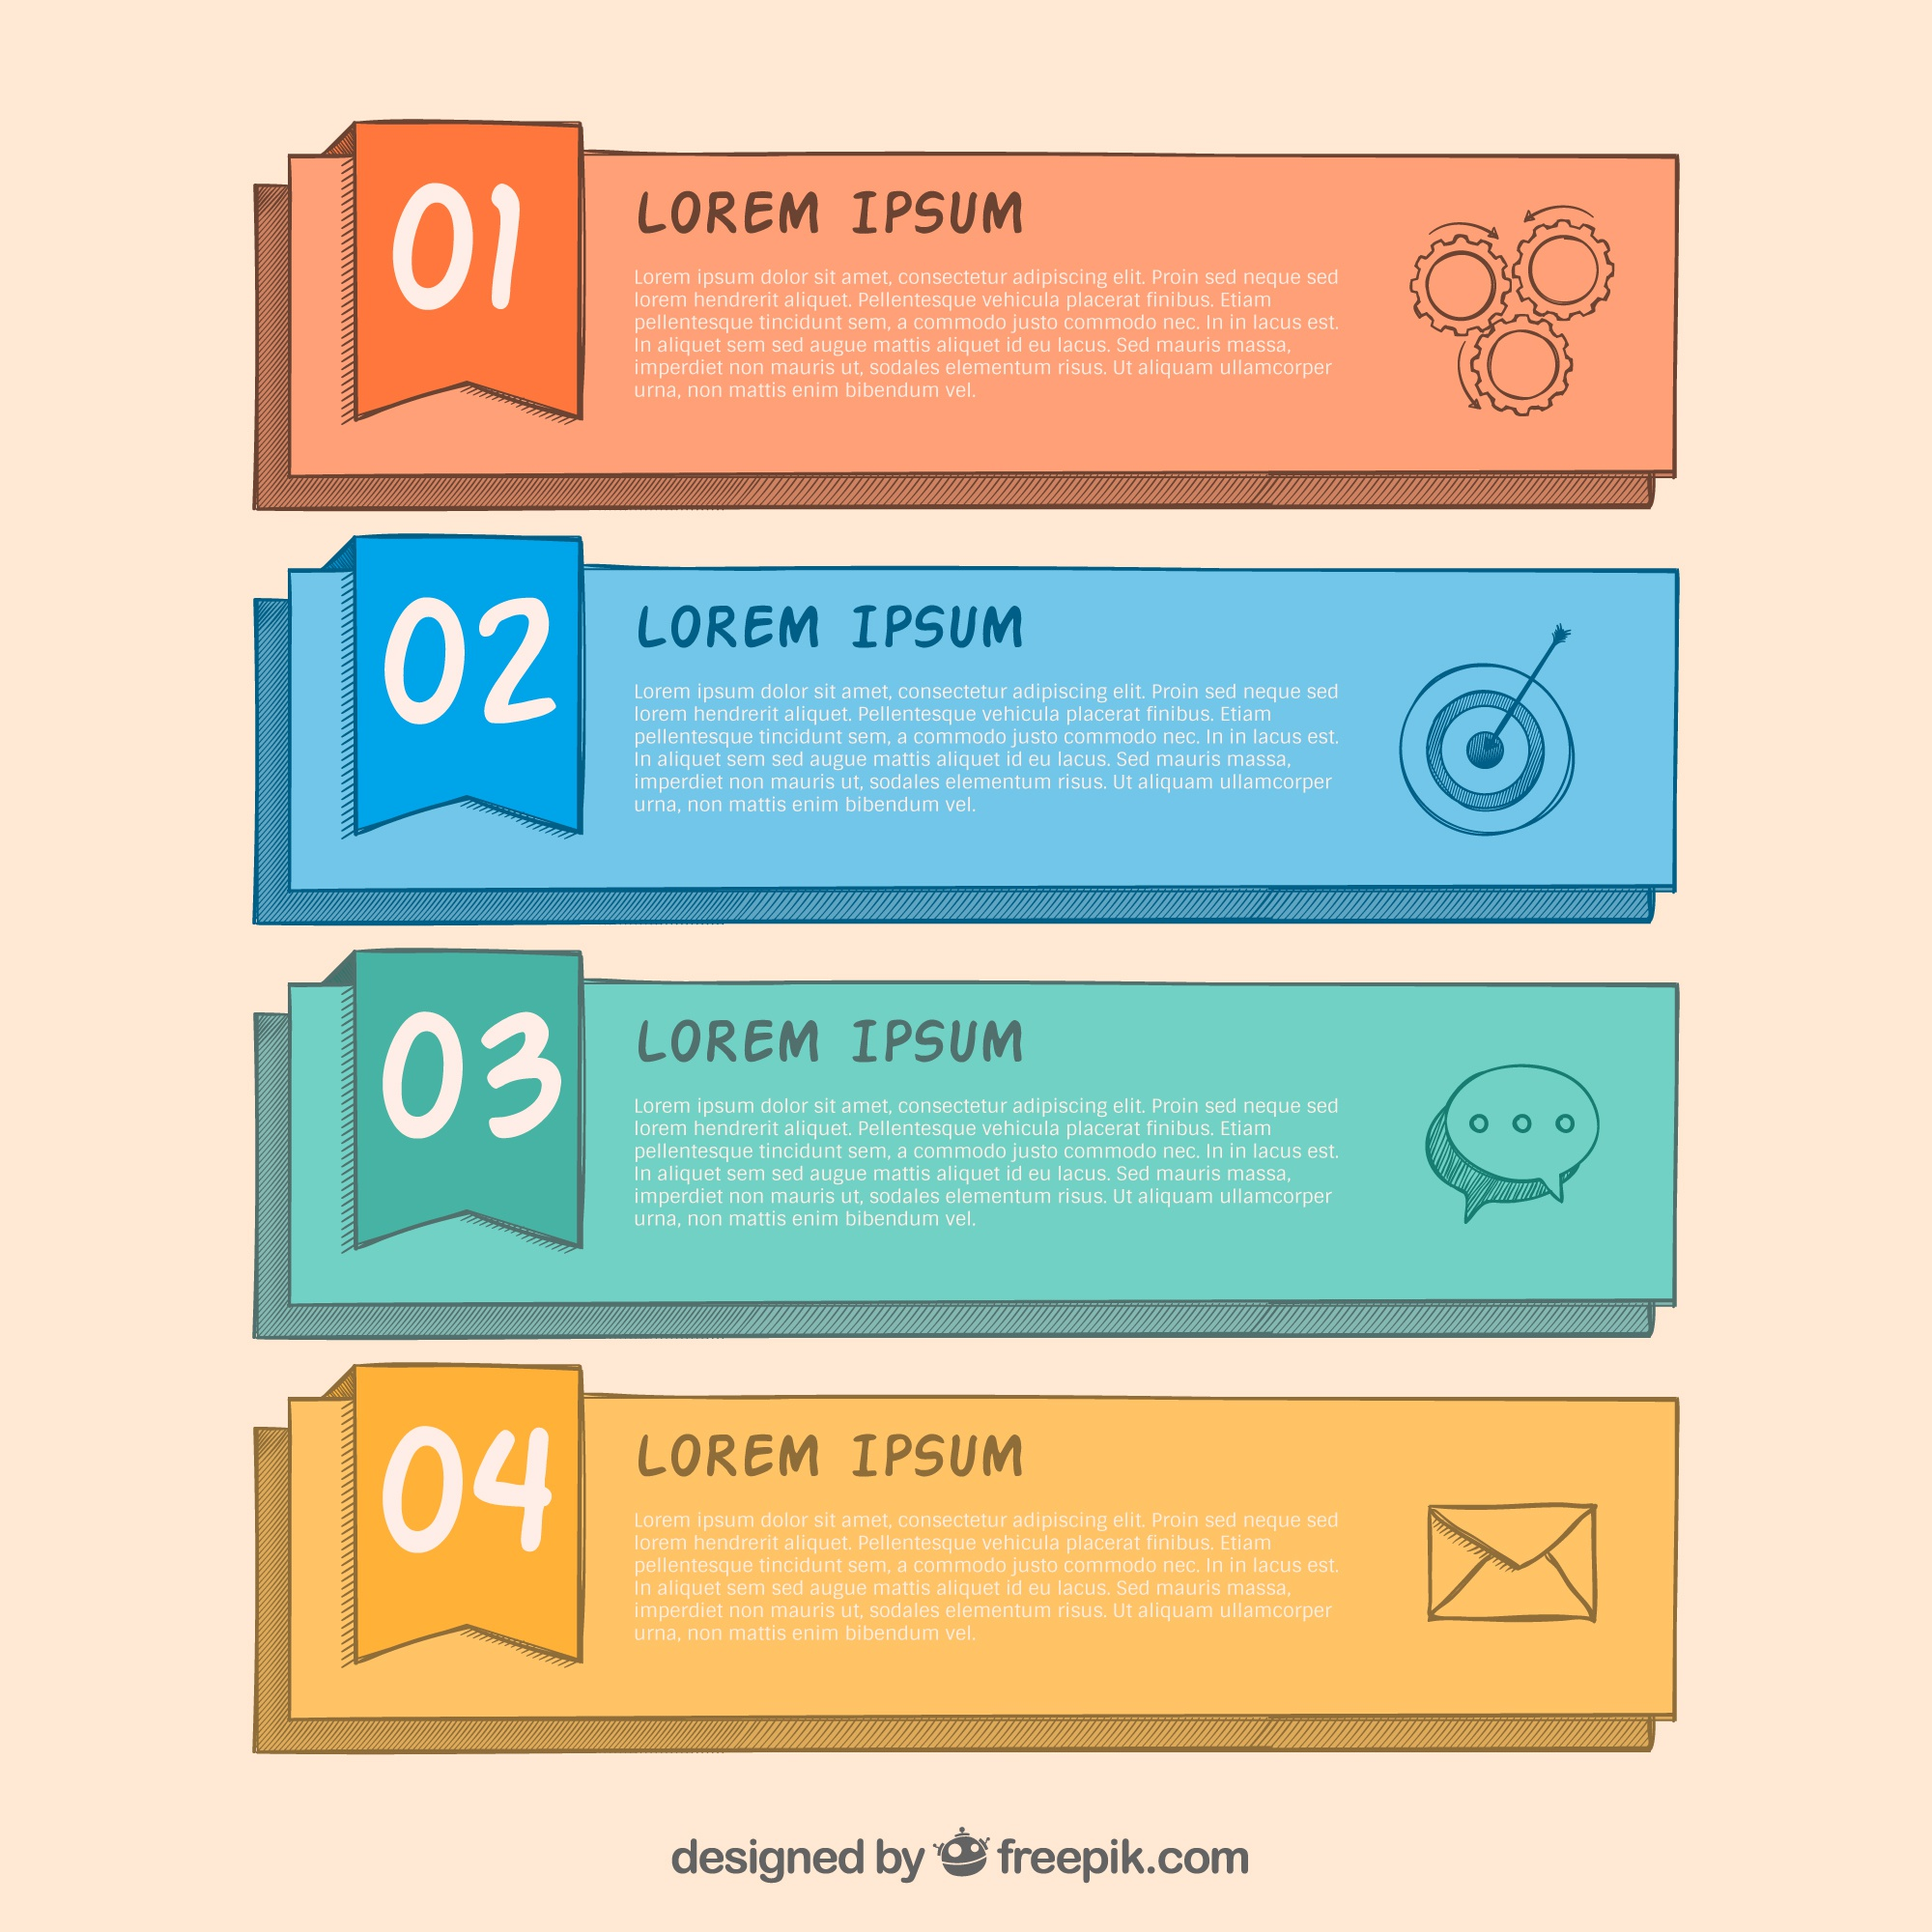 Set of four hand-drawn infographic banners with different colors